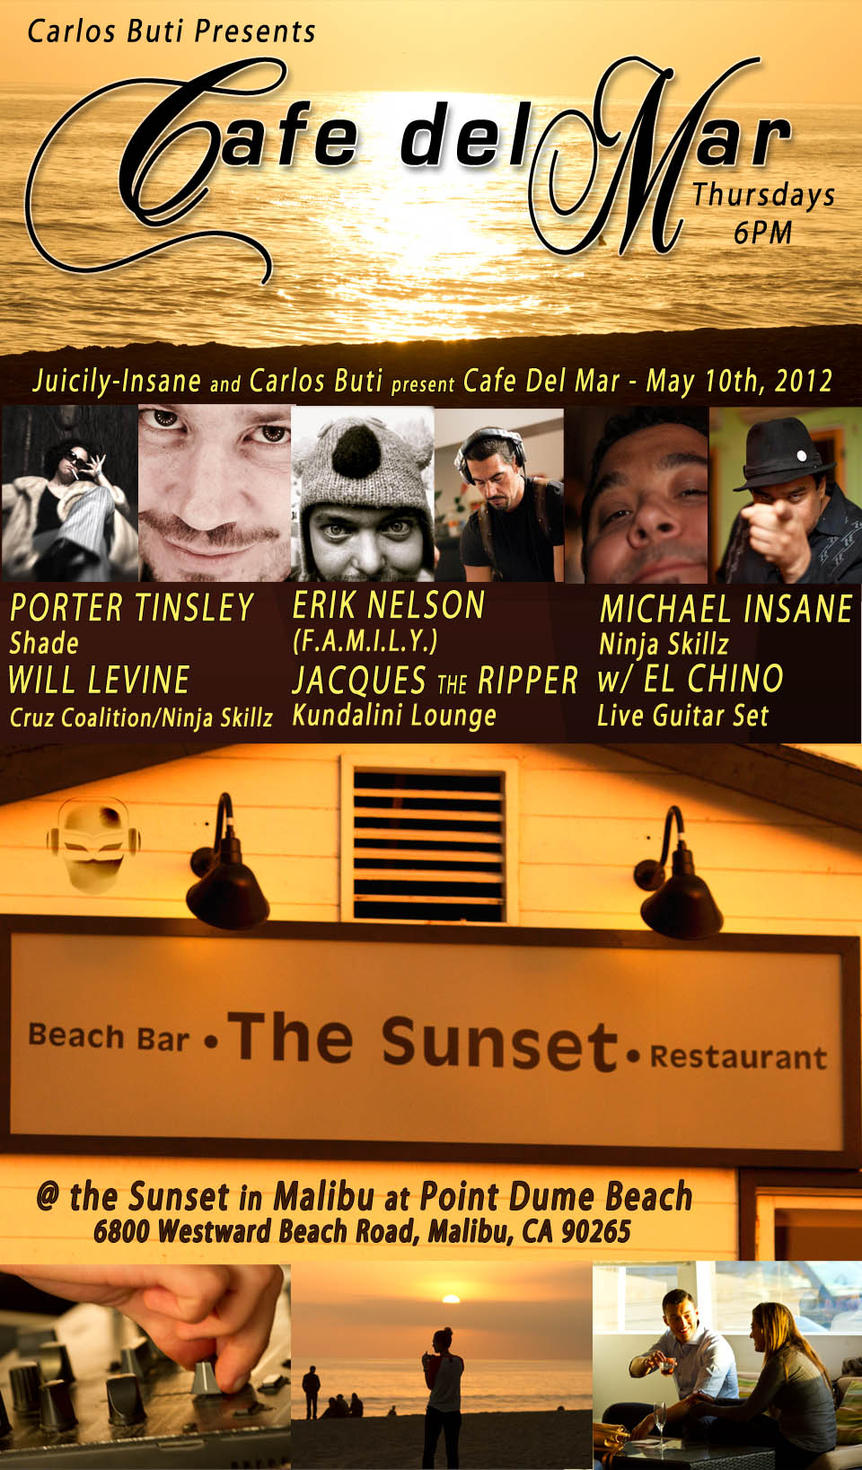 Cafe Del Mar - May 10 - at the sunset